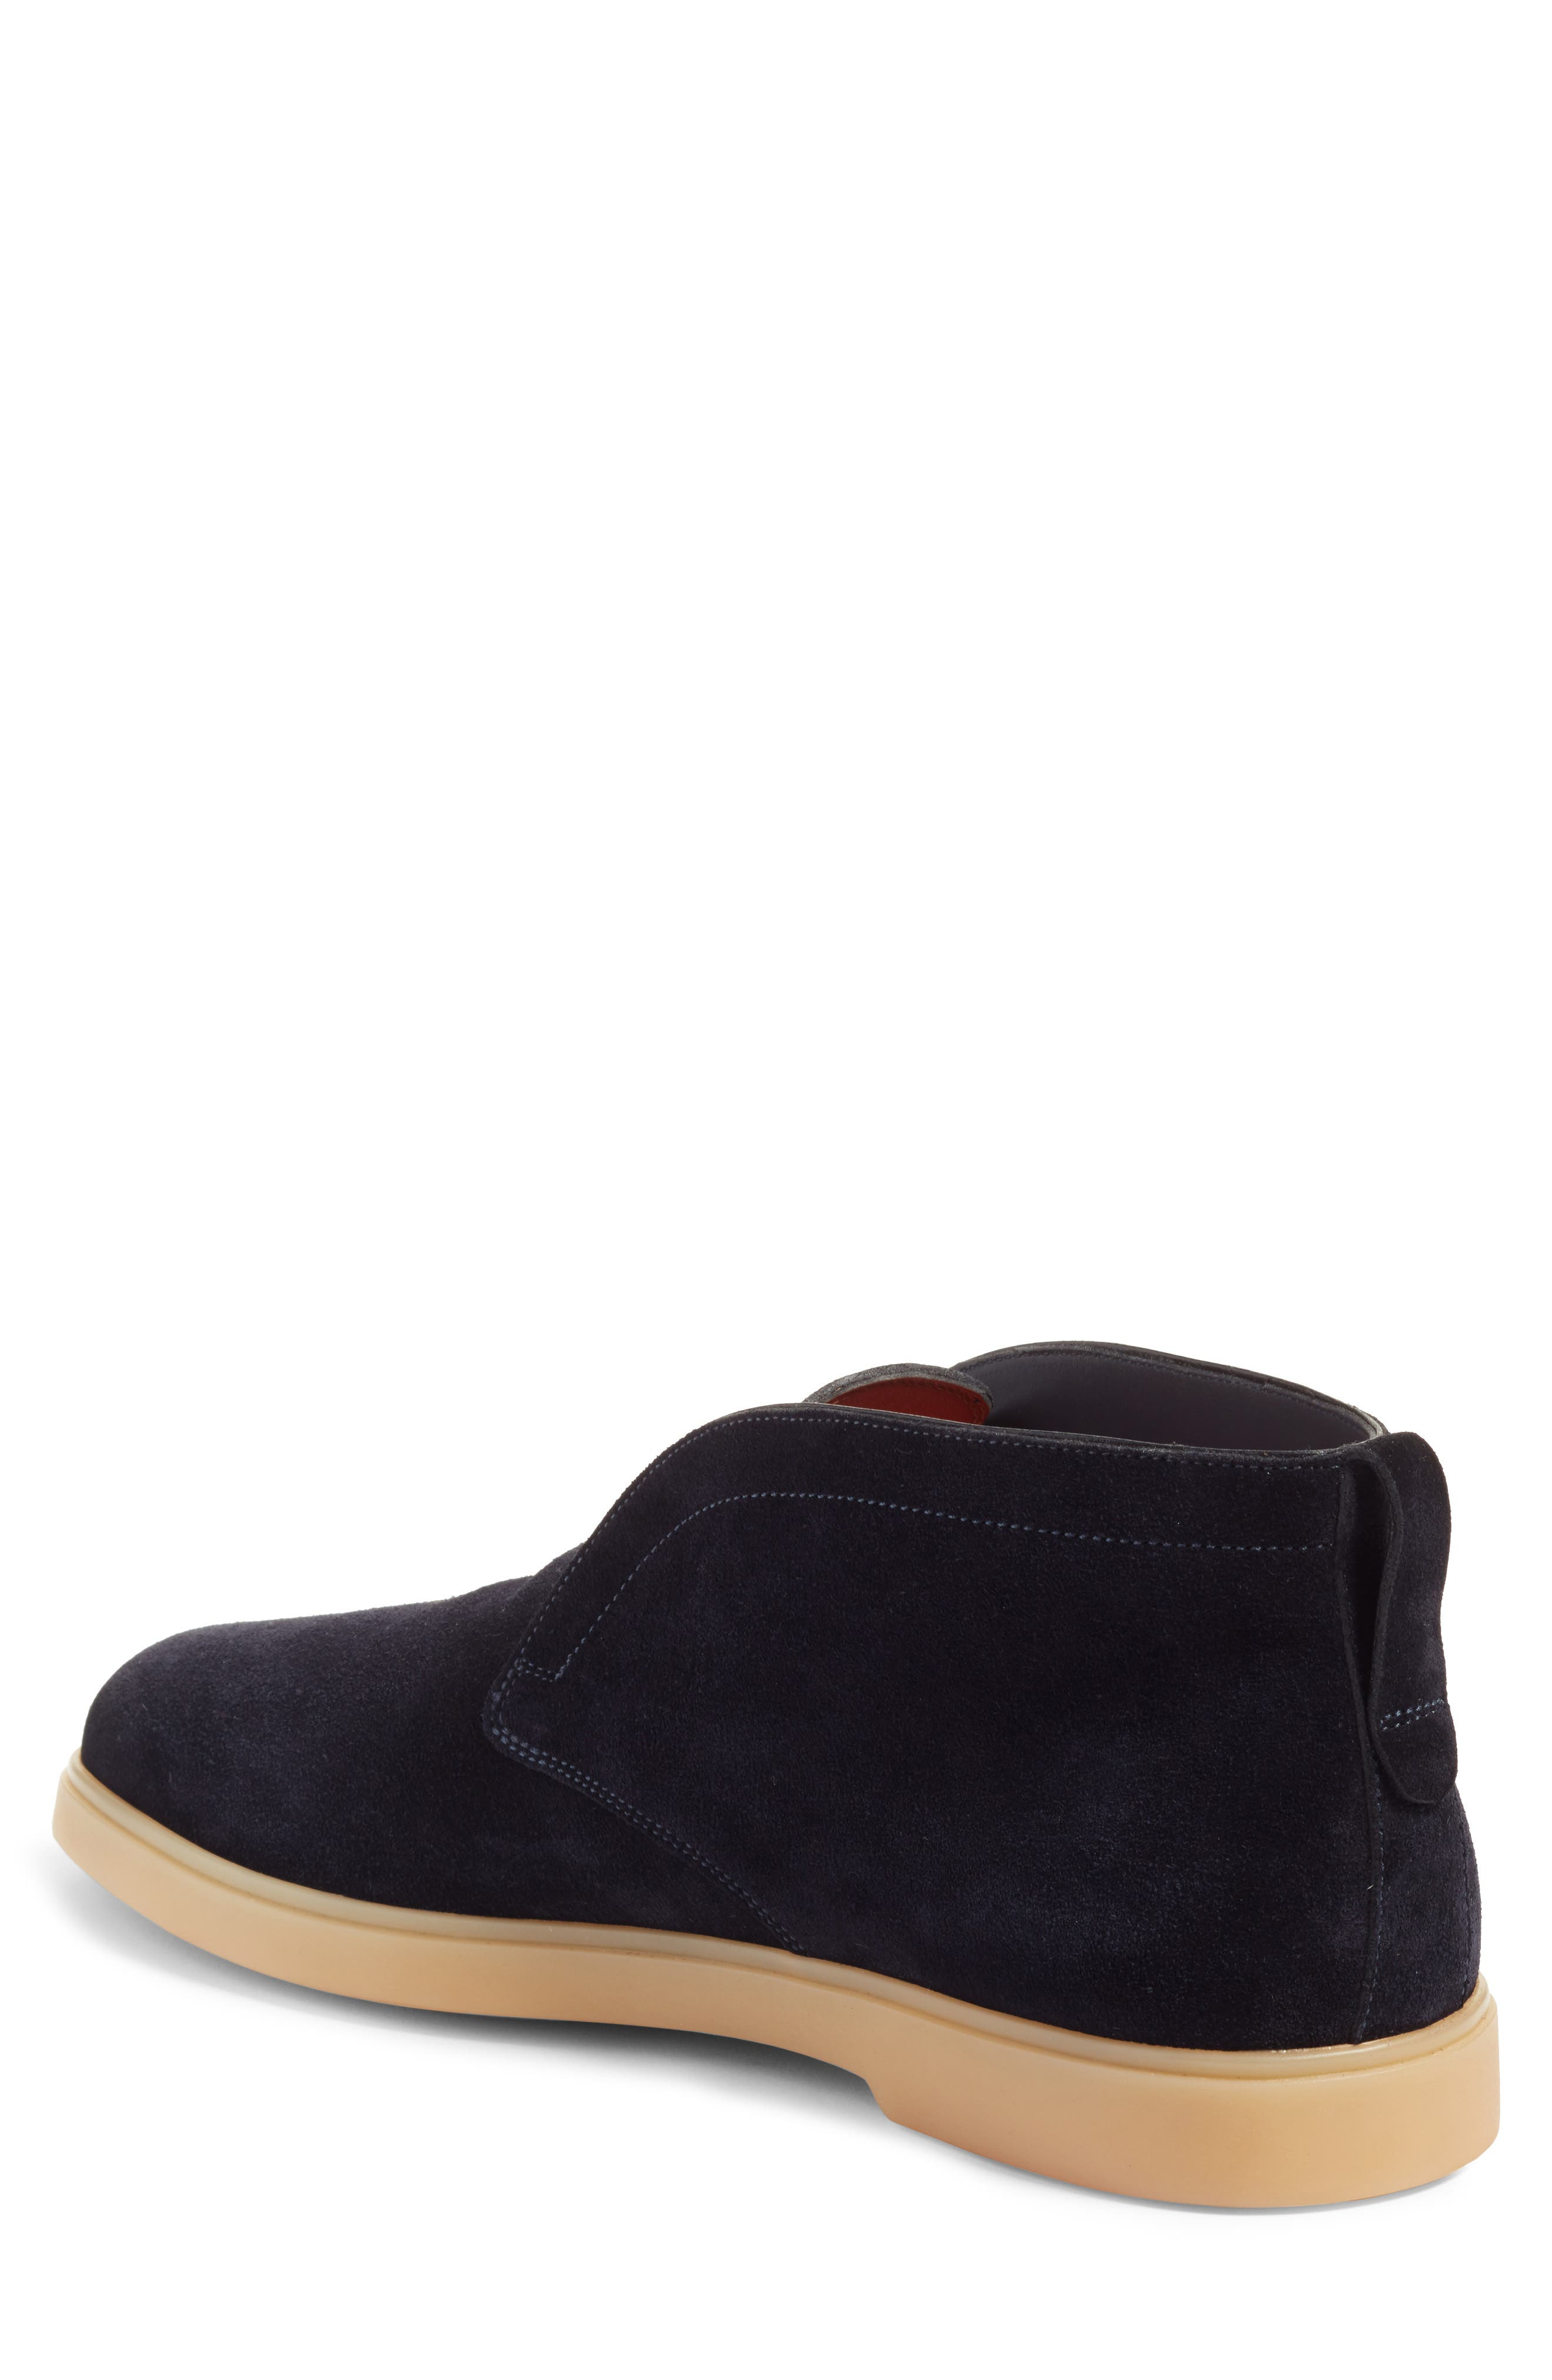 Gus Laceless Chukka Boot,                             Alternate thumbnail 2, color,                             Blue Suede